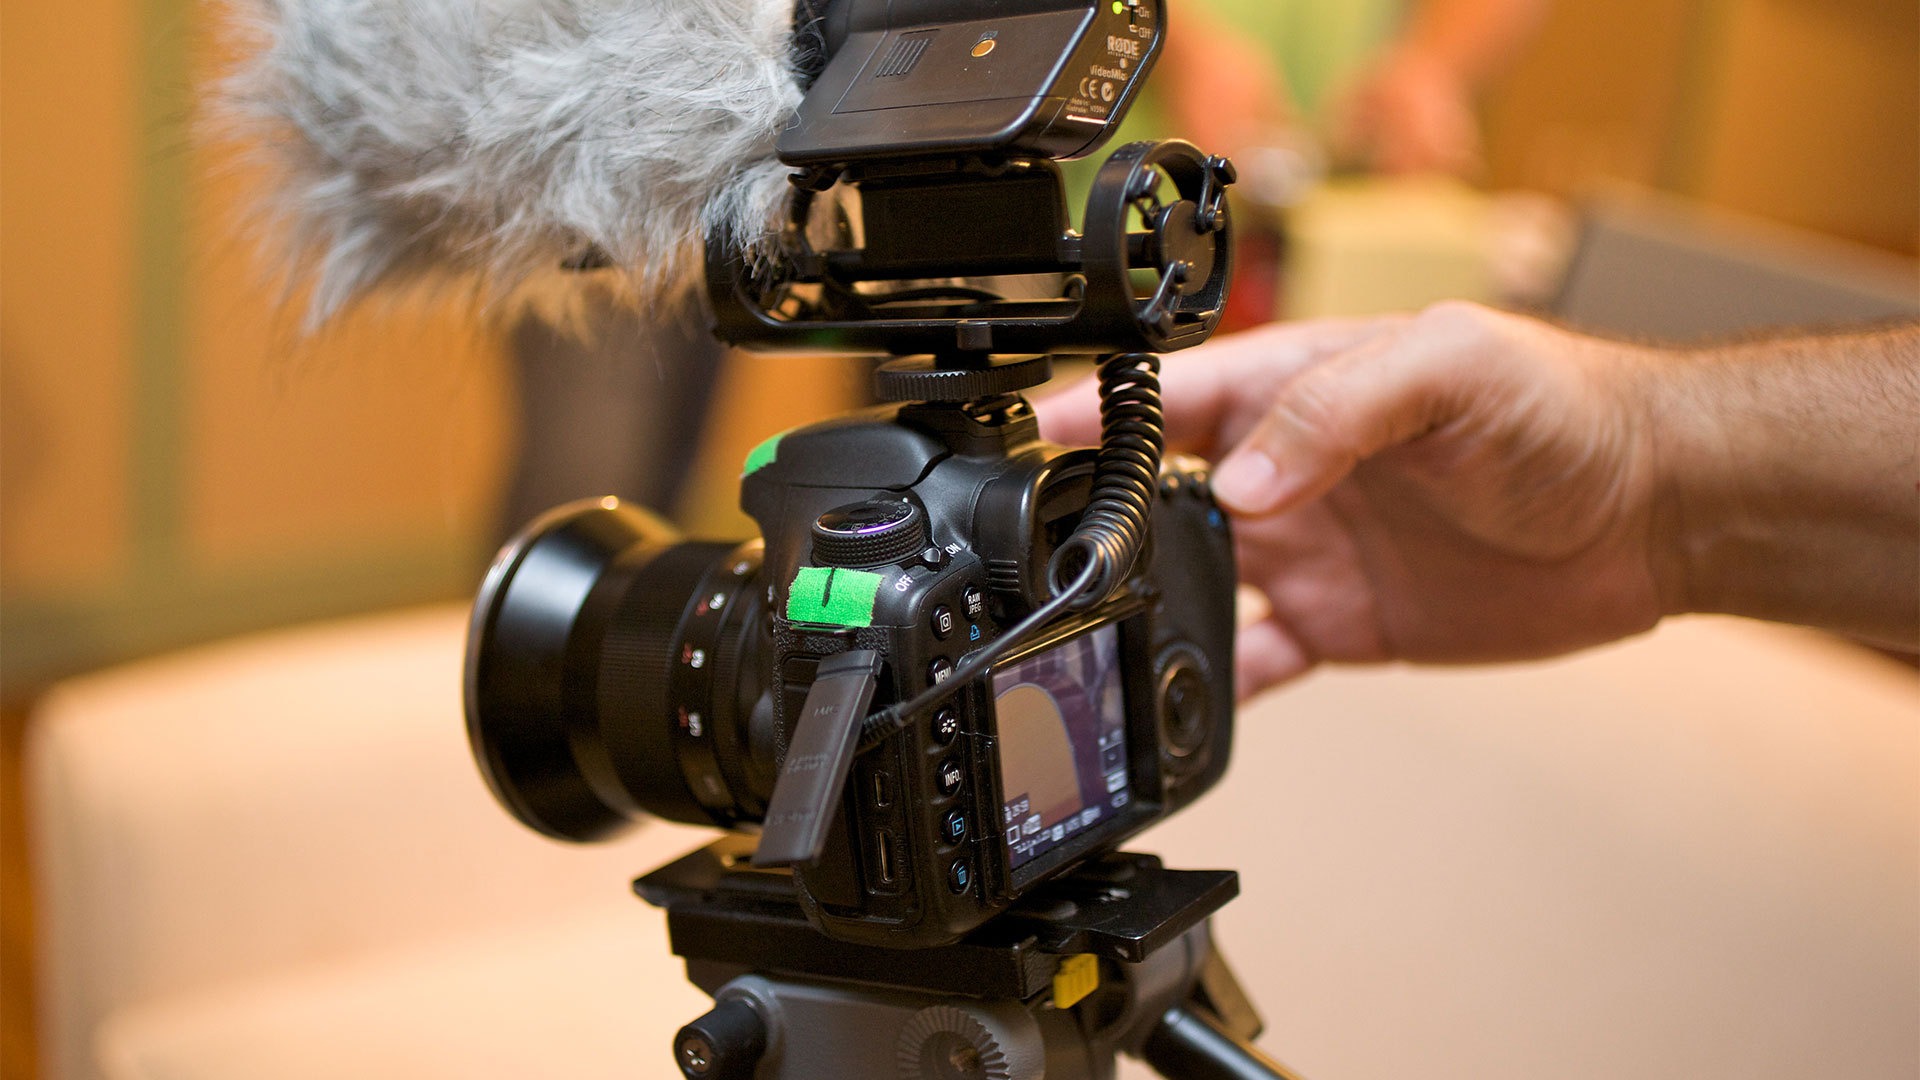 How to Get a Stable Shot When Shooting Video